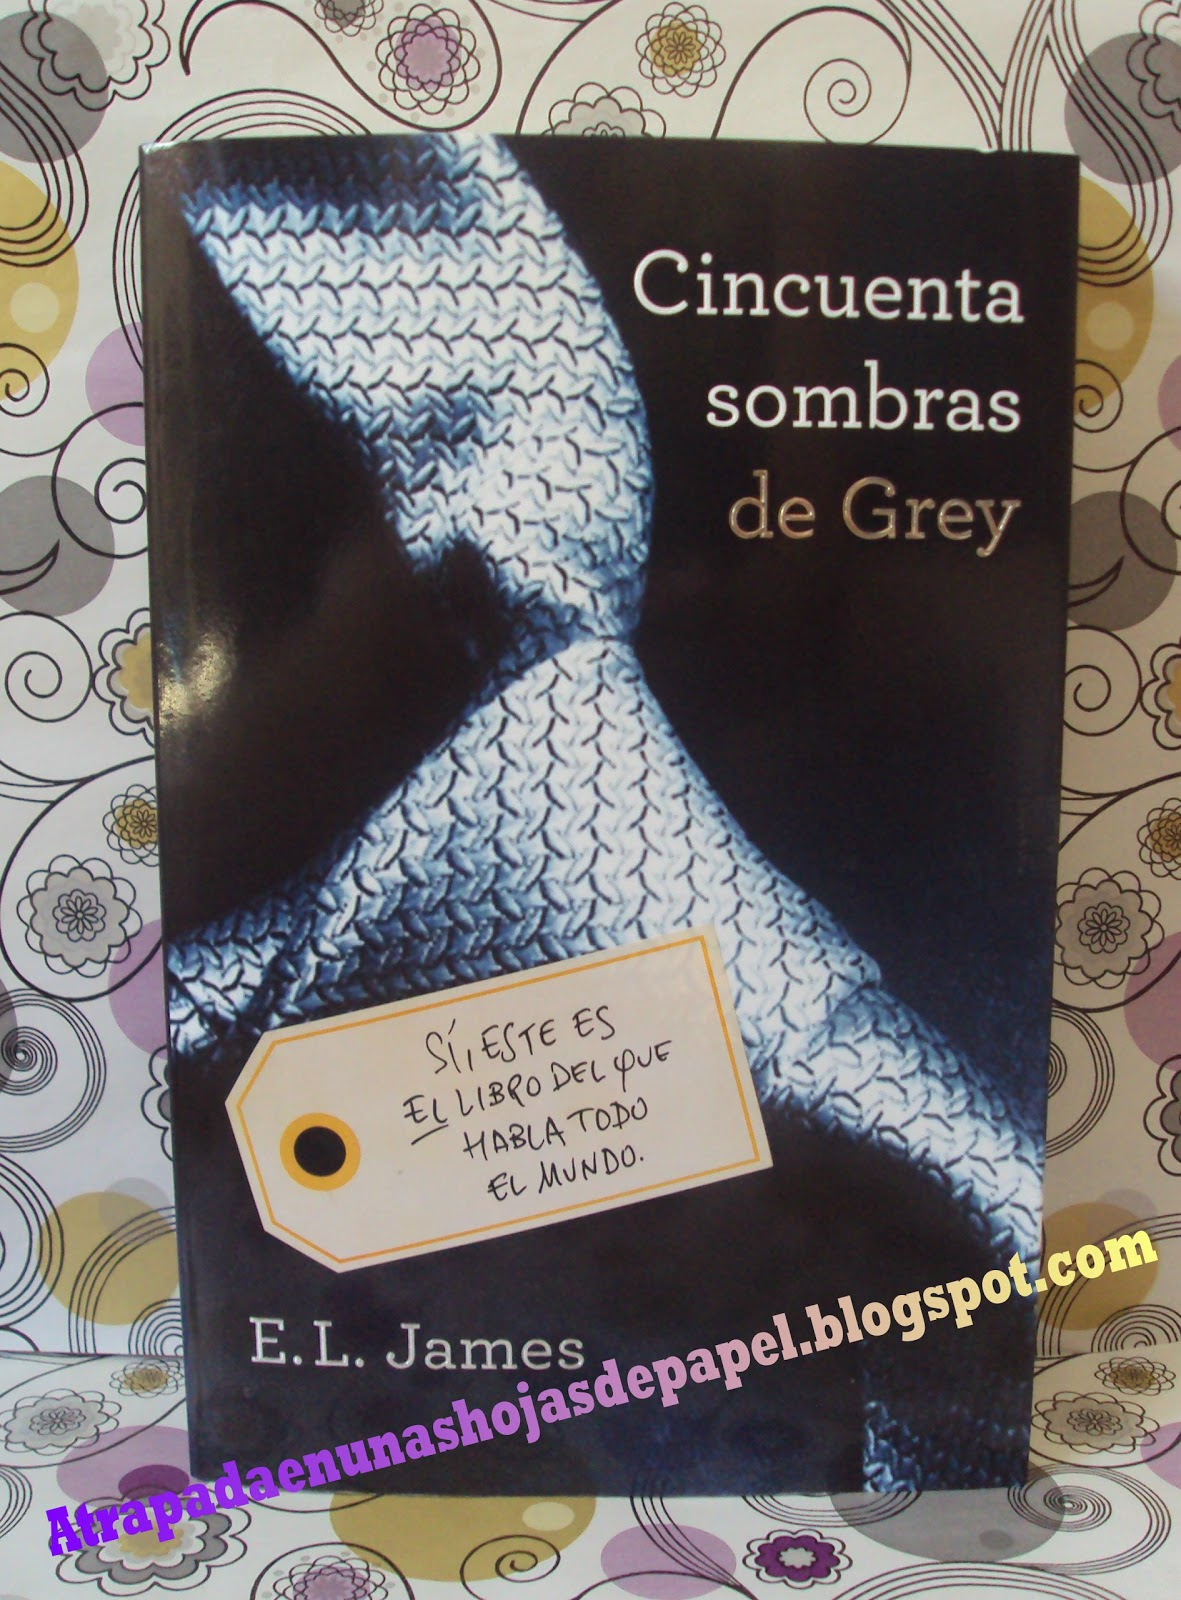 50 Sombras De Grey 2 Libro Cincuenta Sombras De Grey E L James